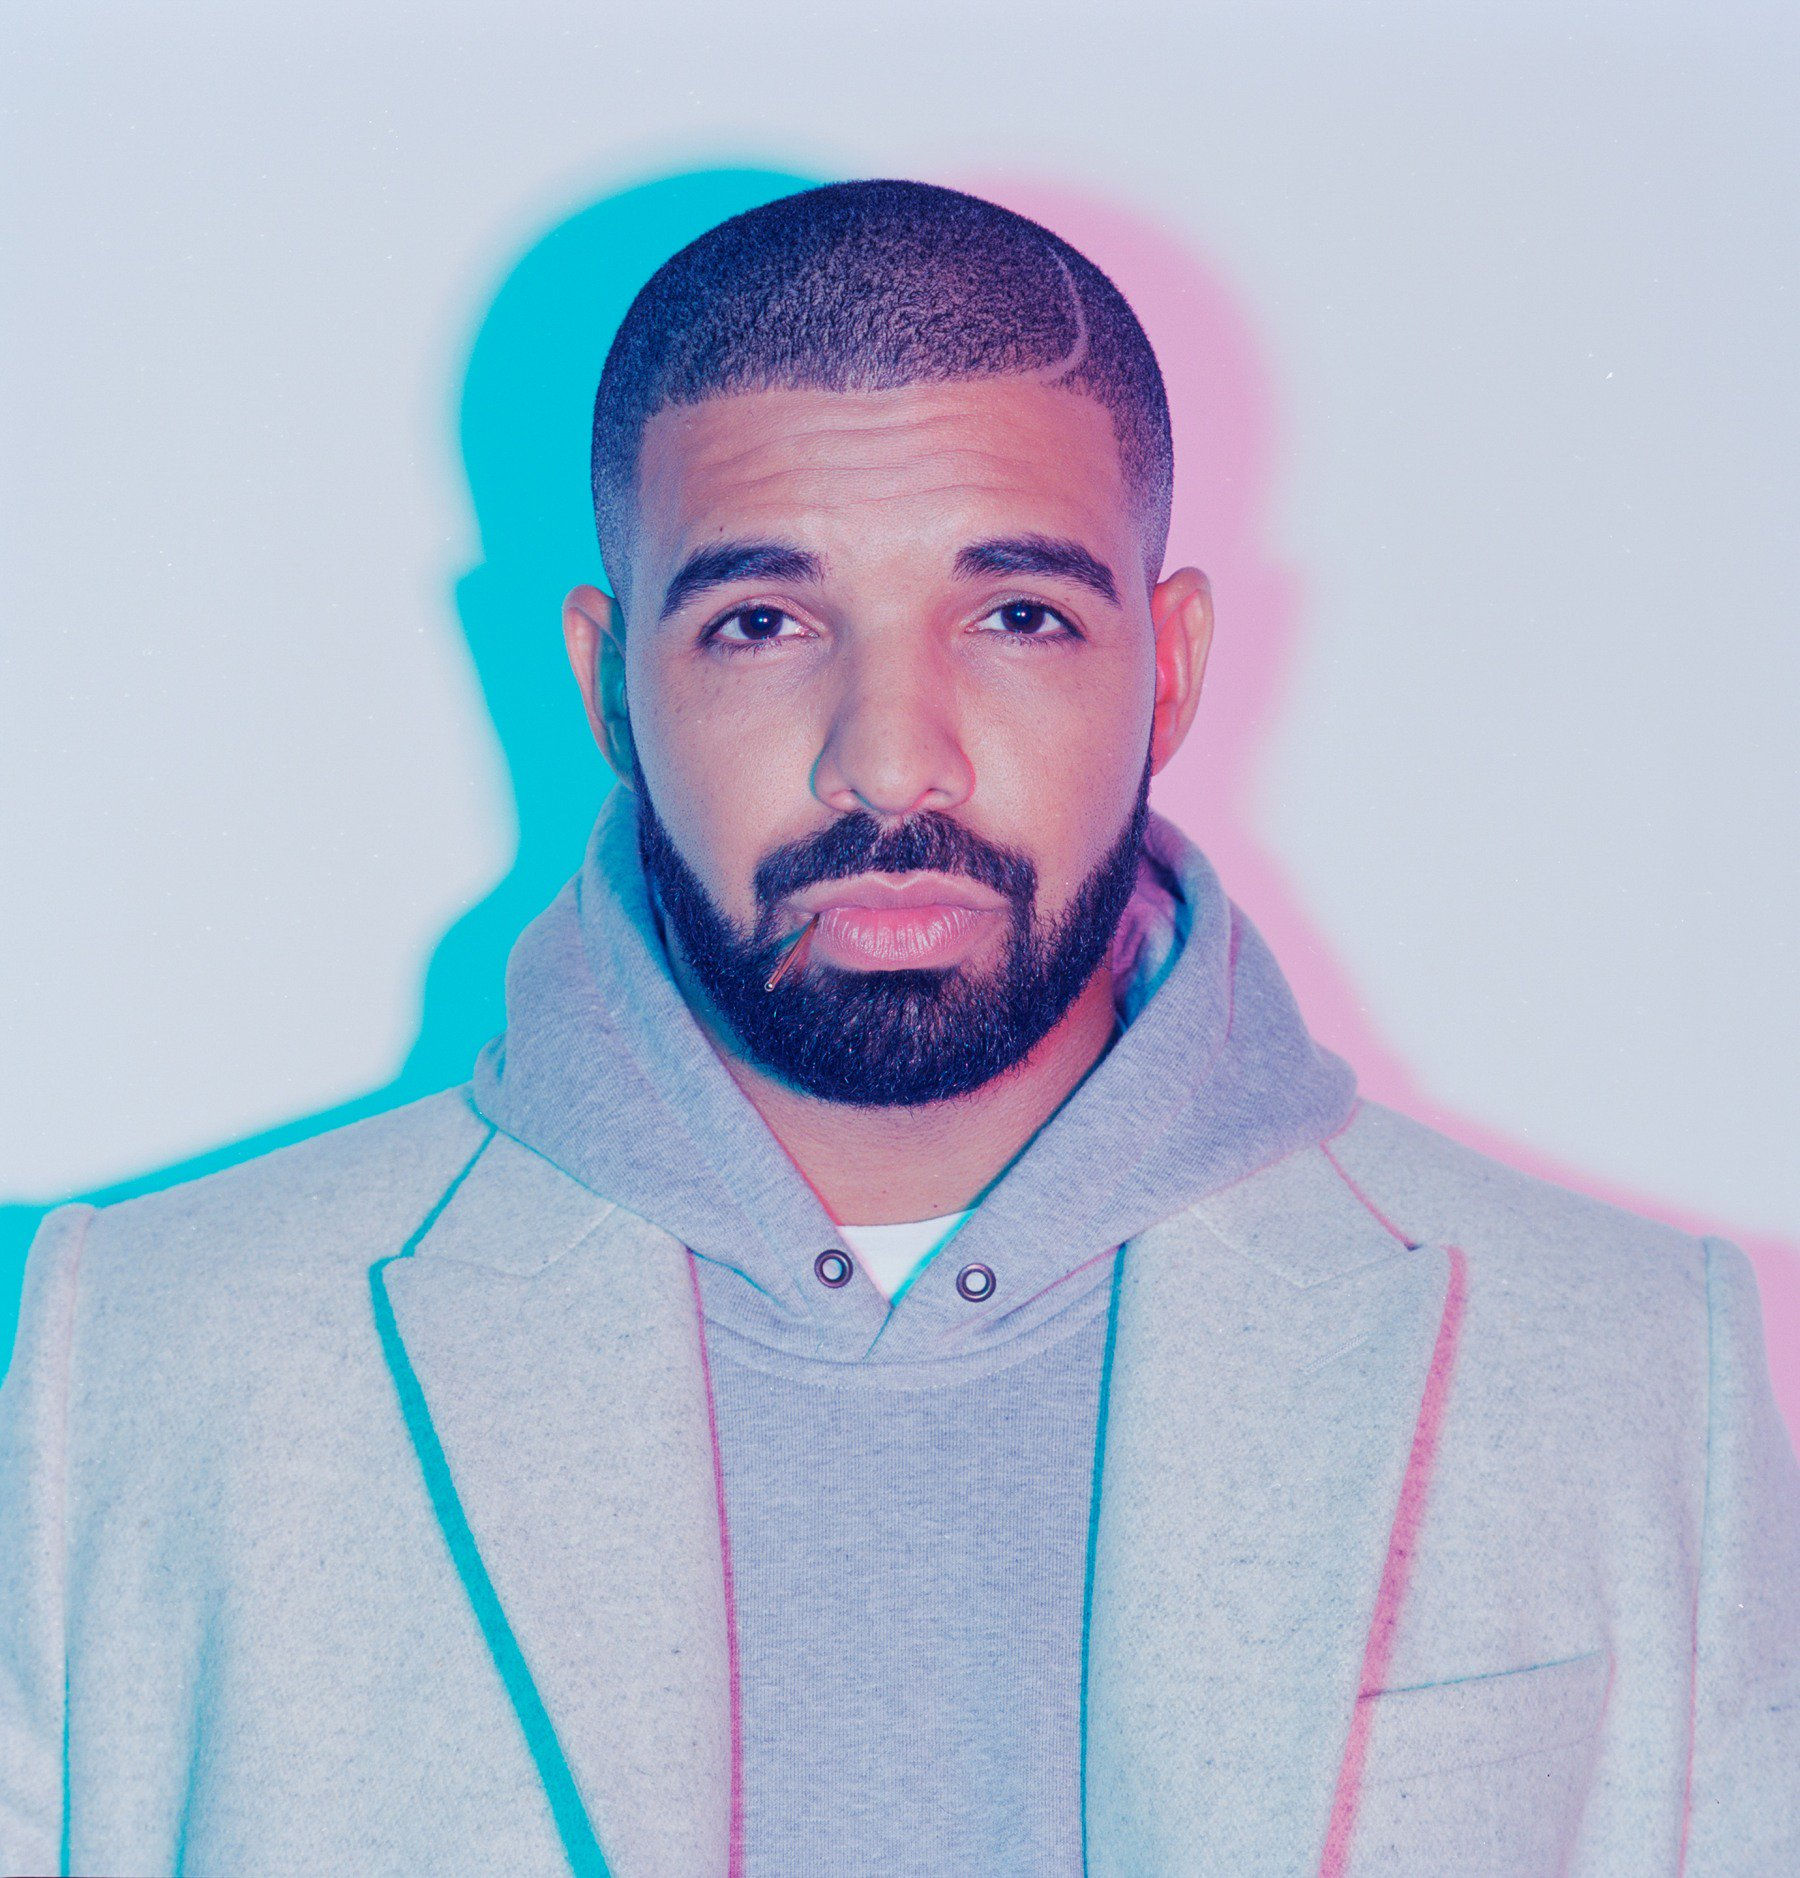 A guide to all the members of Drake's OVO crew. https://t.co/MghnCimWLA https://t.co/uefA9KVFO8